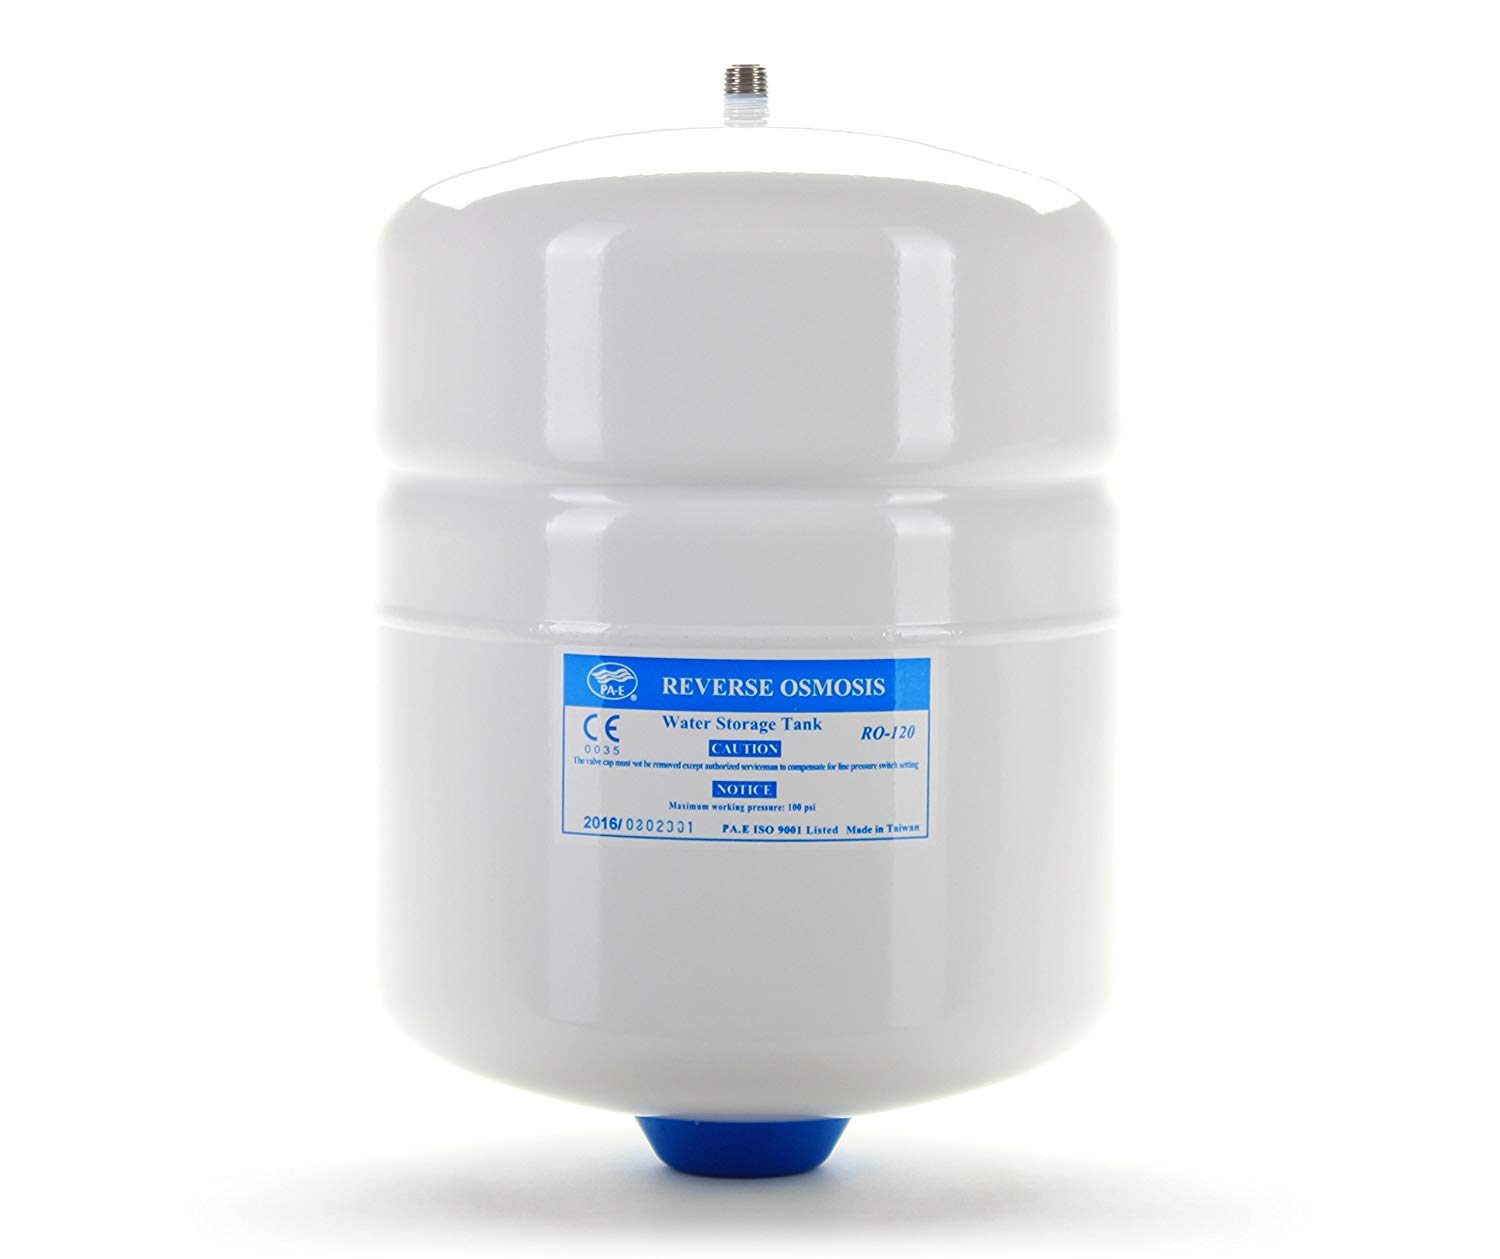 PA-E RO-122 Small Reverse Osmosis Water Storage Tank with Ball Valve for Reverse Osmosis